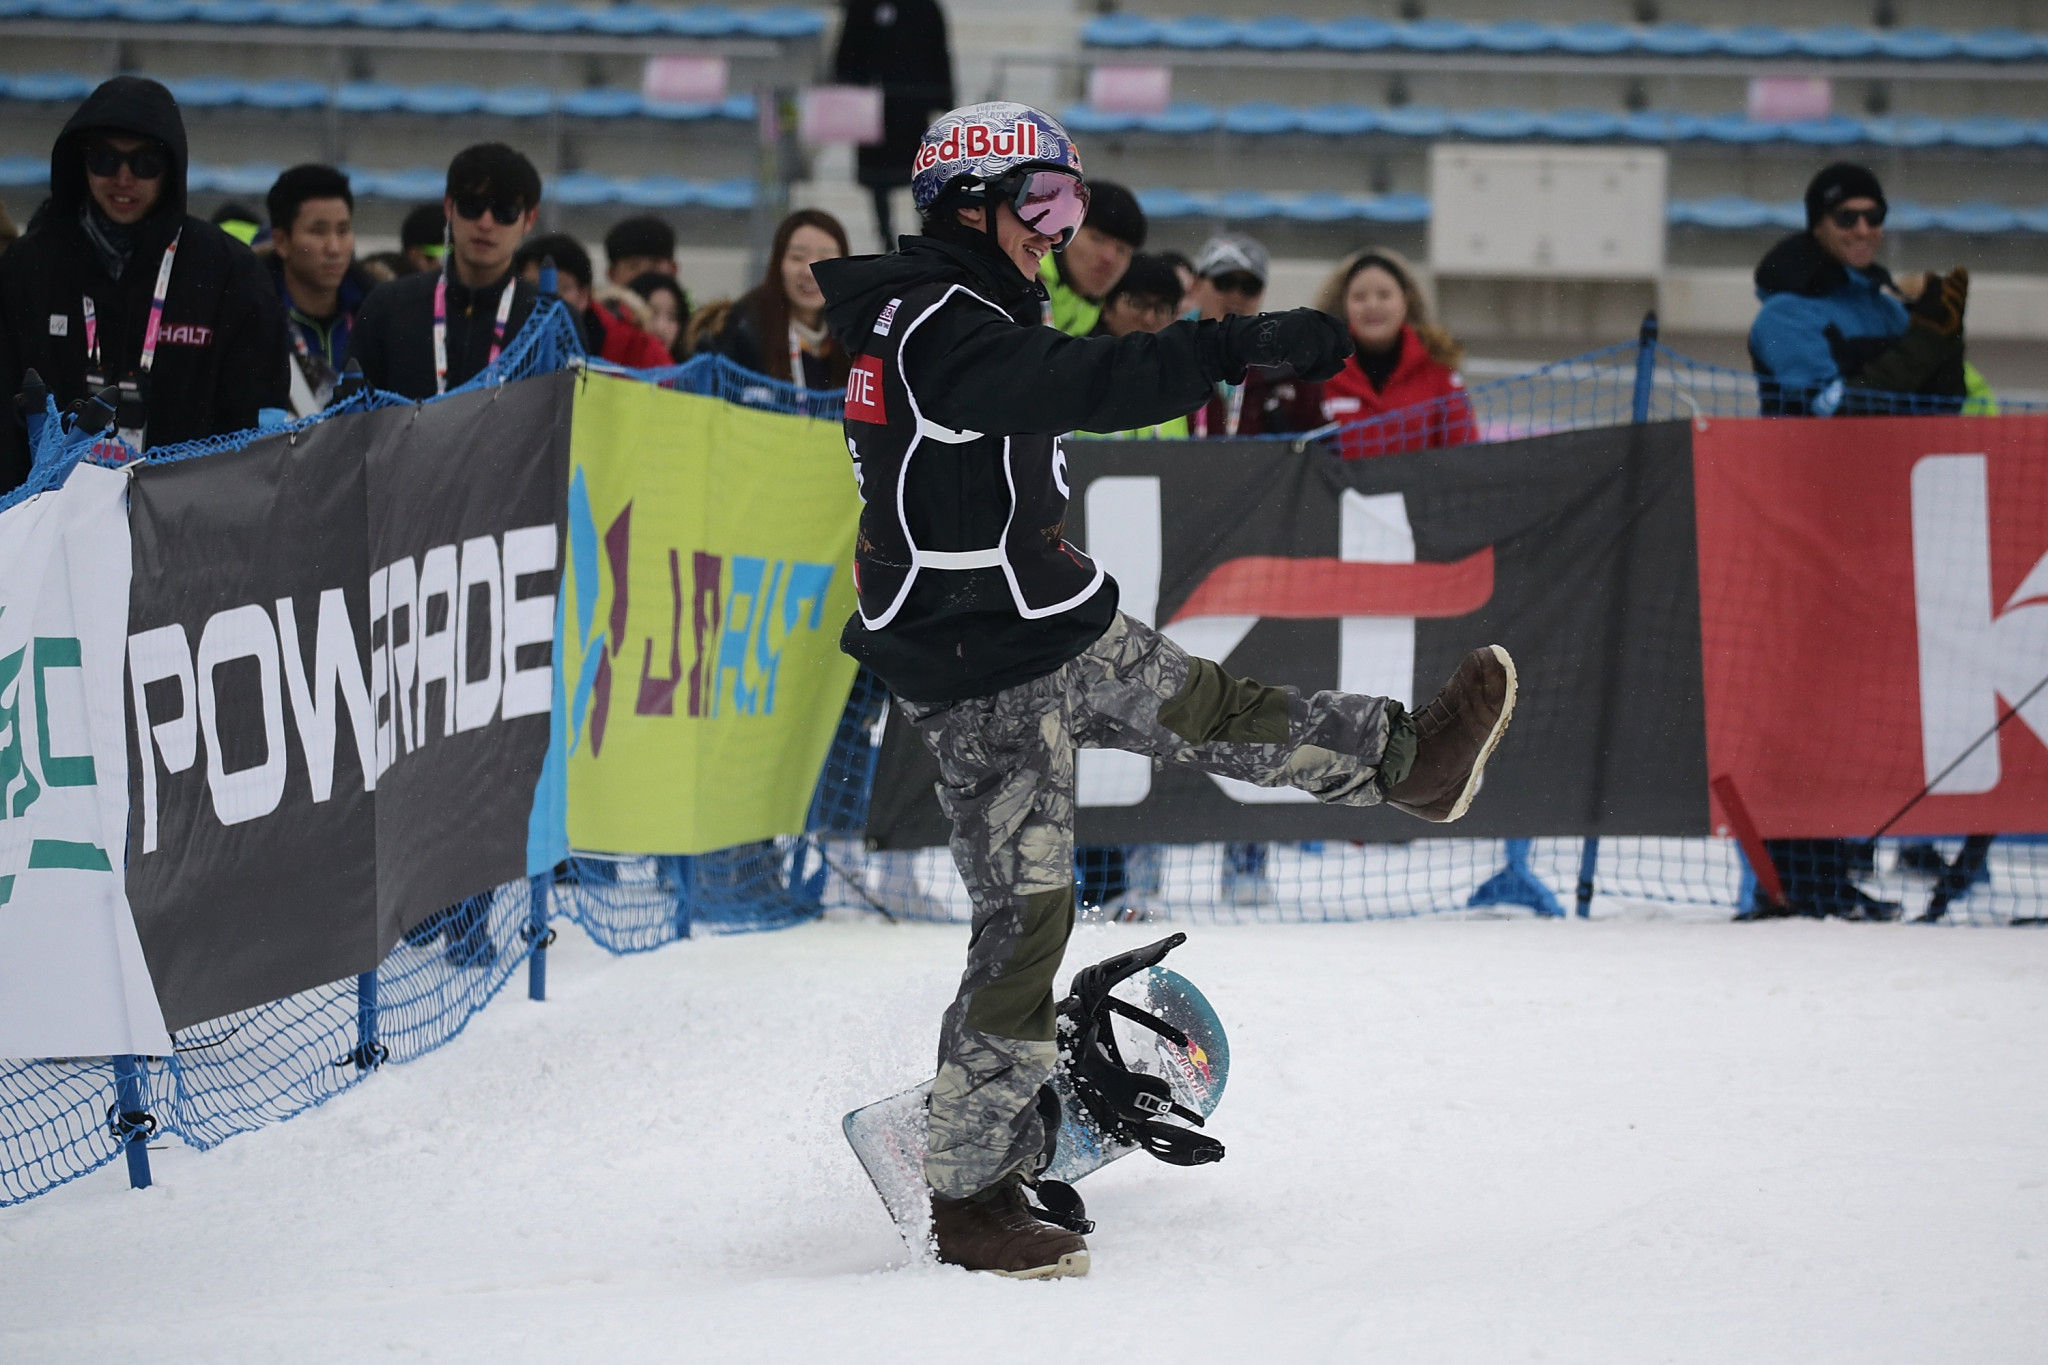 McMorris and Collins top qualification standings at FIS Snowboard Big Air World Cup in Beijing